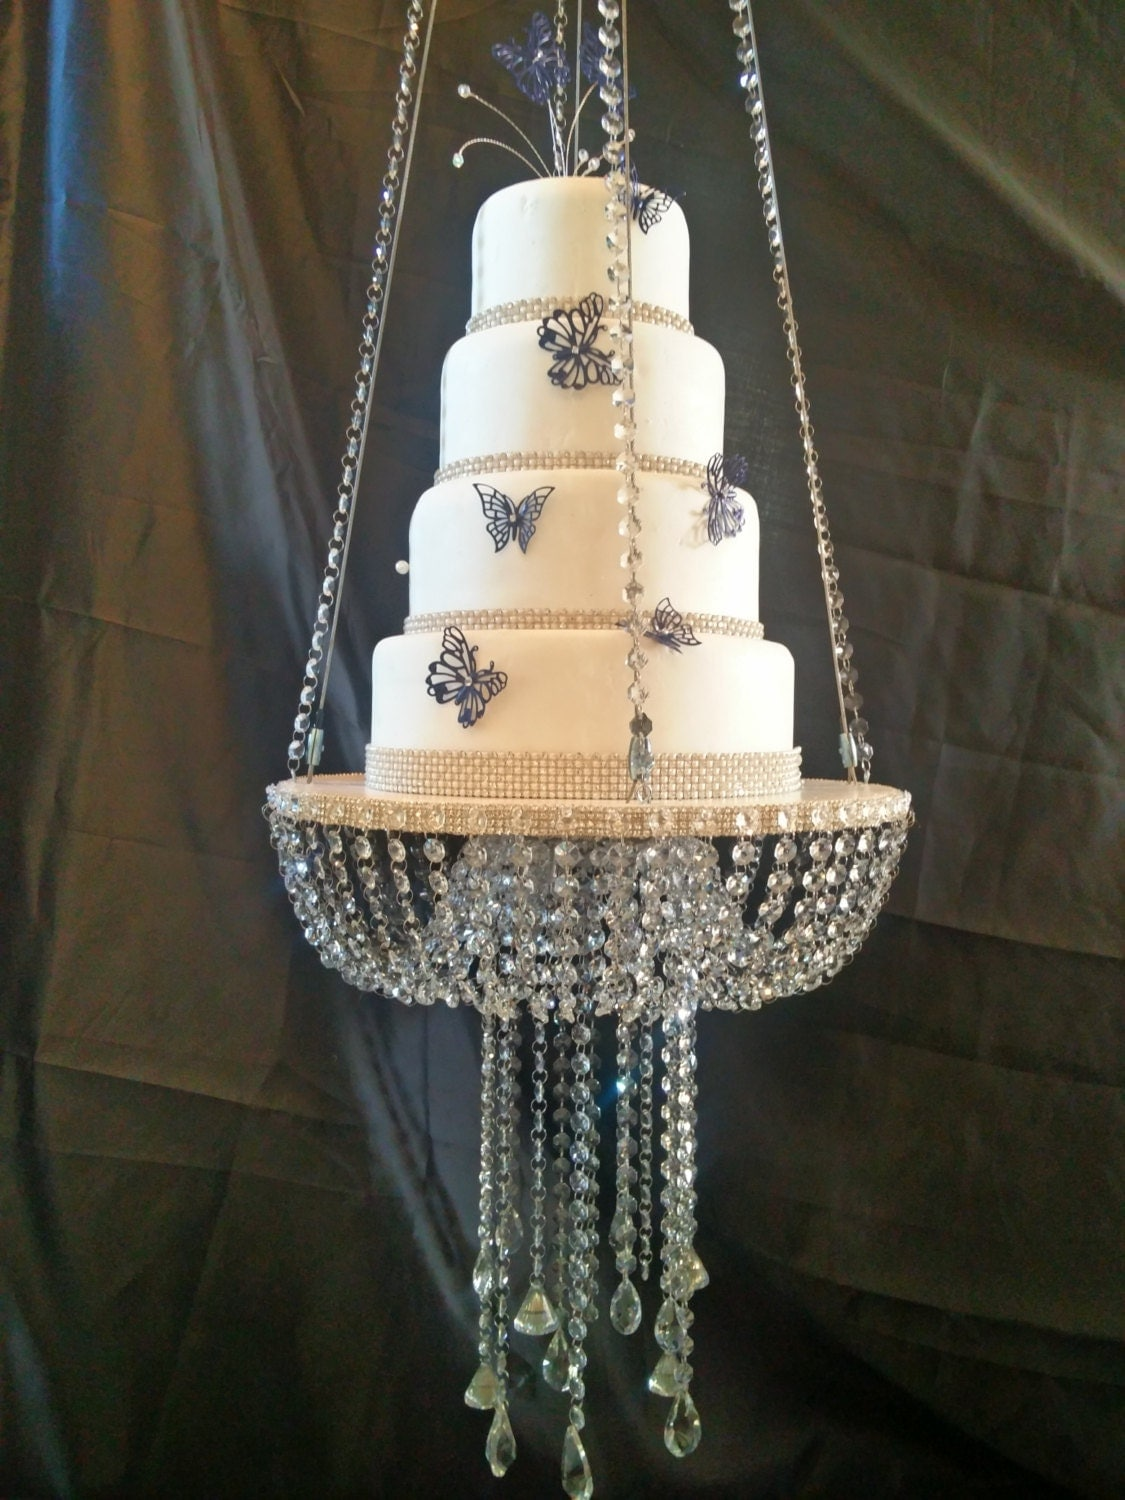 faux crystal chandelier style drape suspended swing cake stand, Lighting ideas